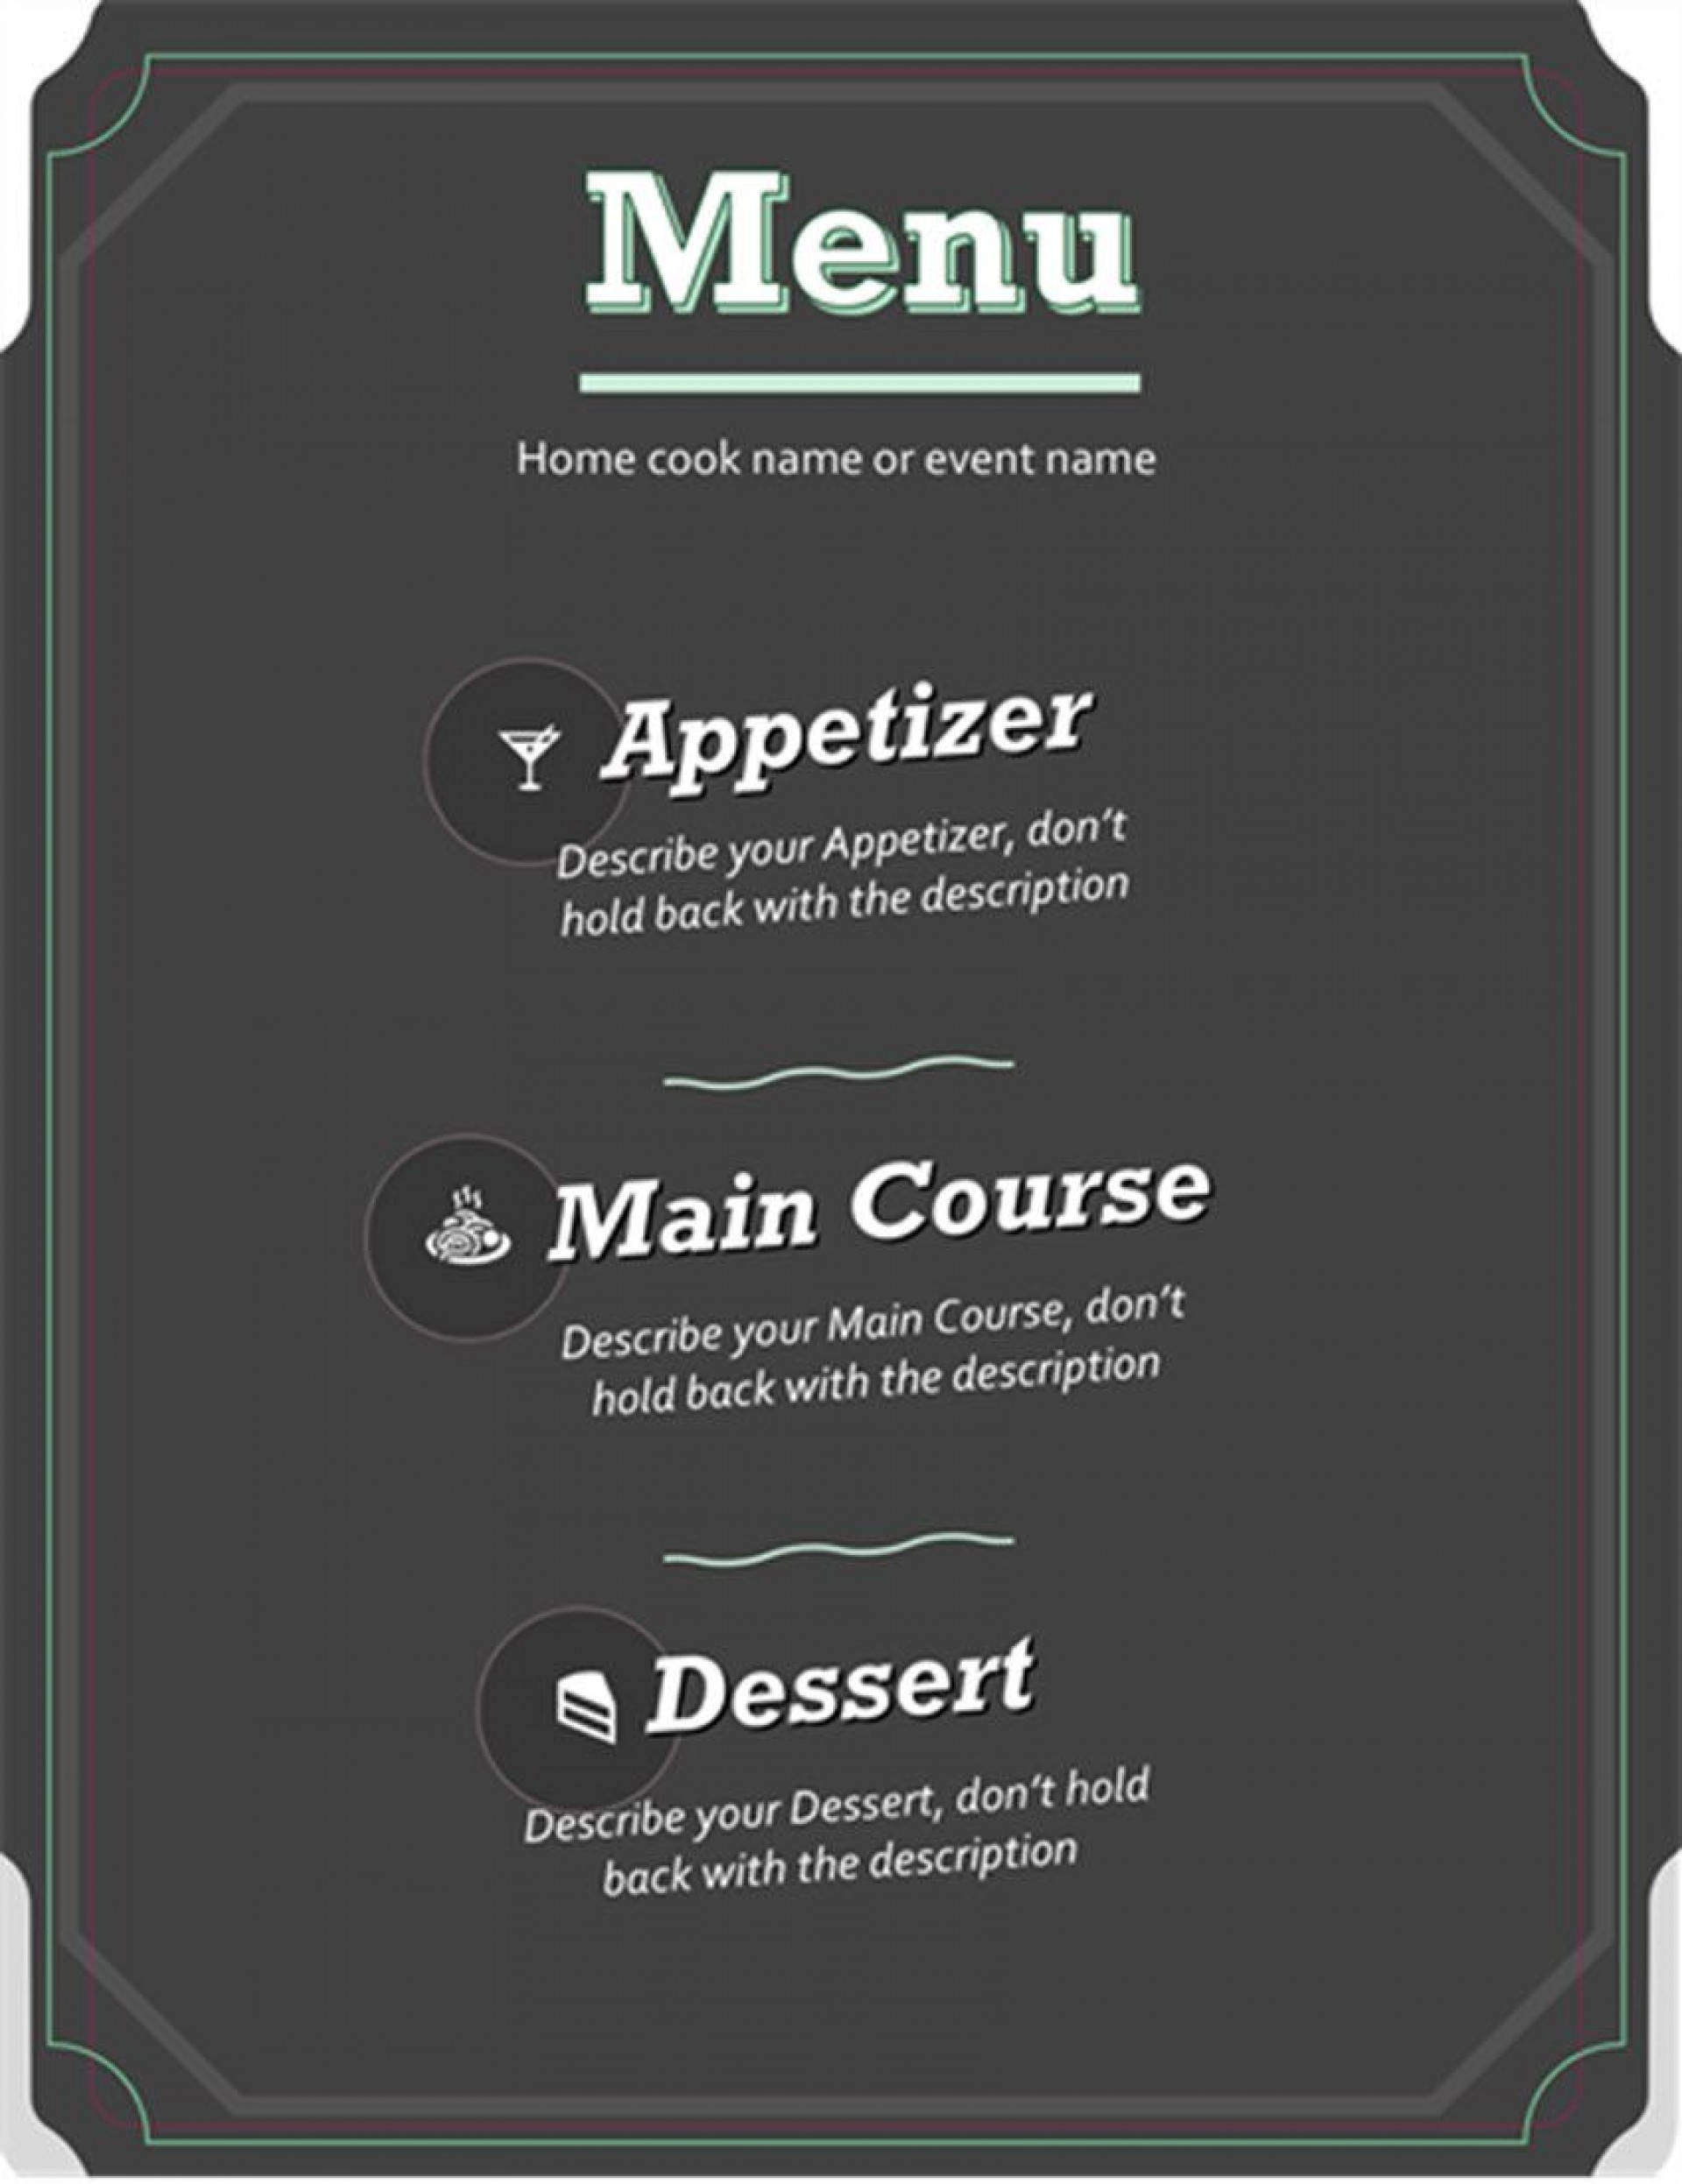 003 Imposing Menu Template Free Download Word Concept  Dinner Party Wedding1920